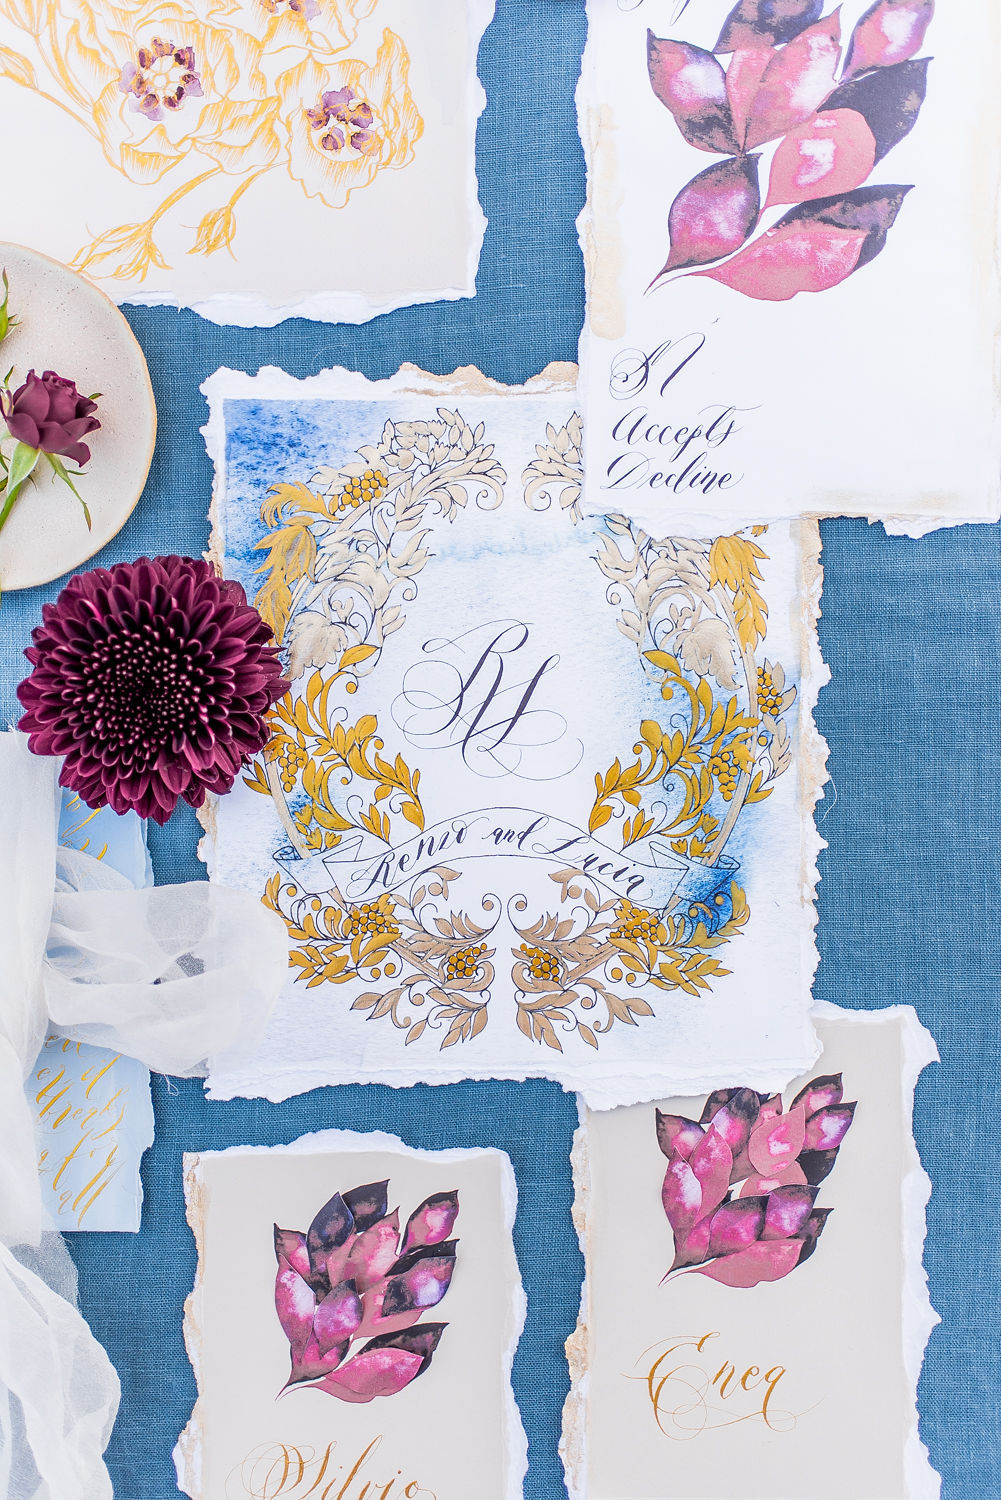 This blogpost is about when you should send out your wedding invitations, showing an invitation suite with blue, gold and red colours.